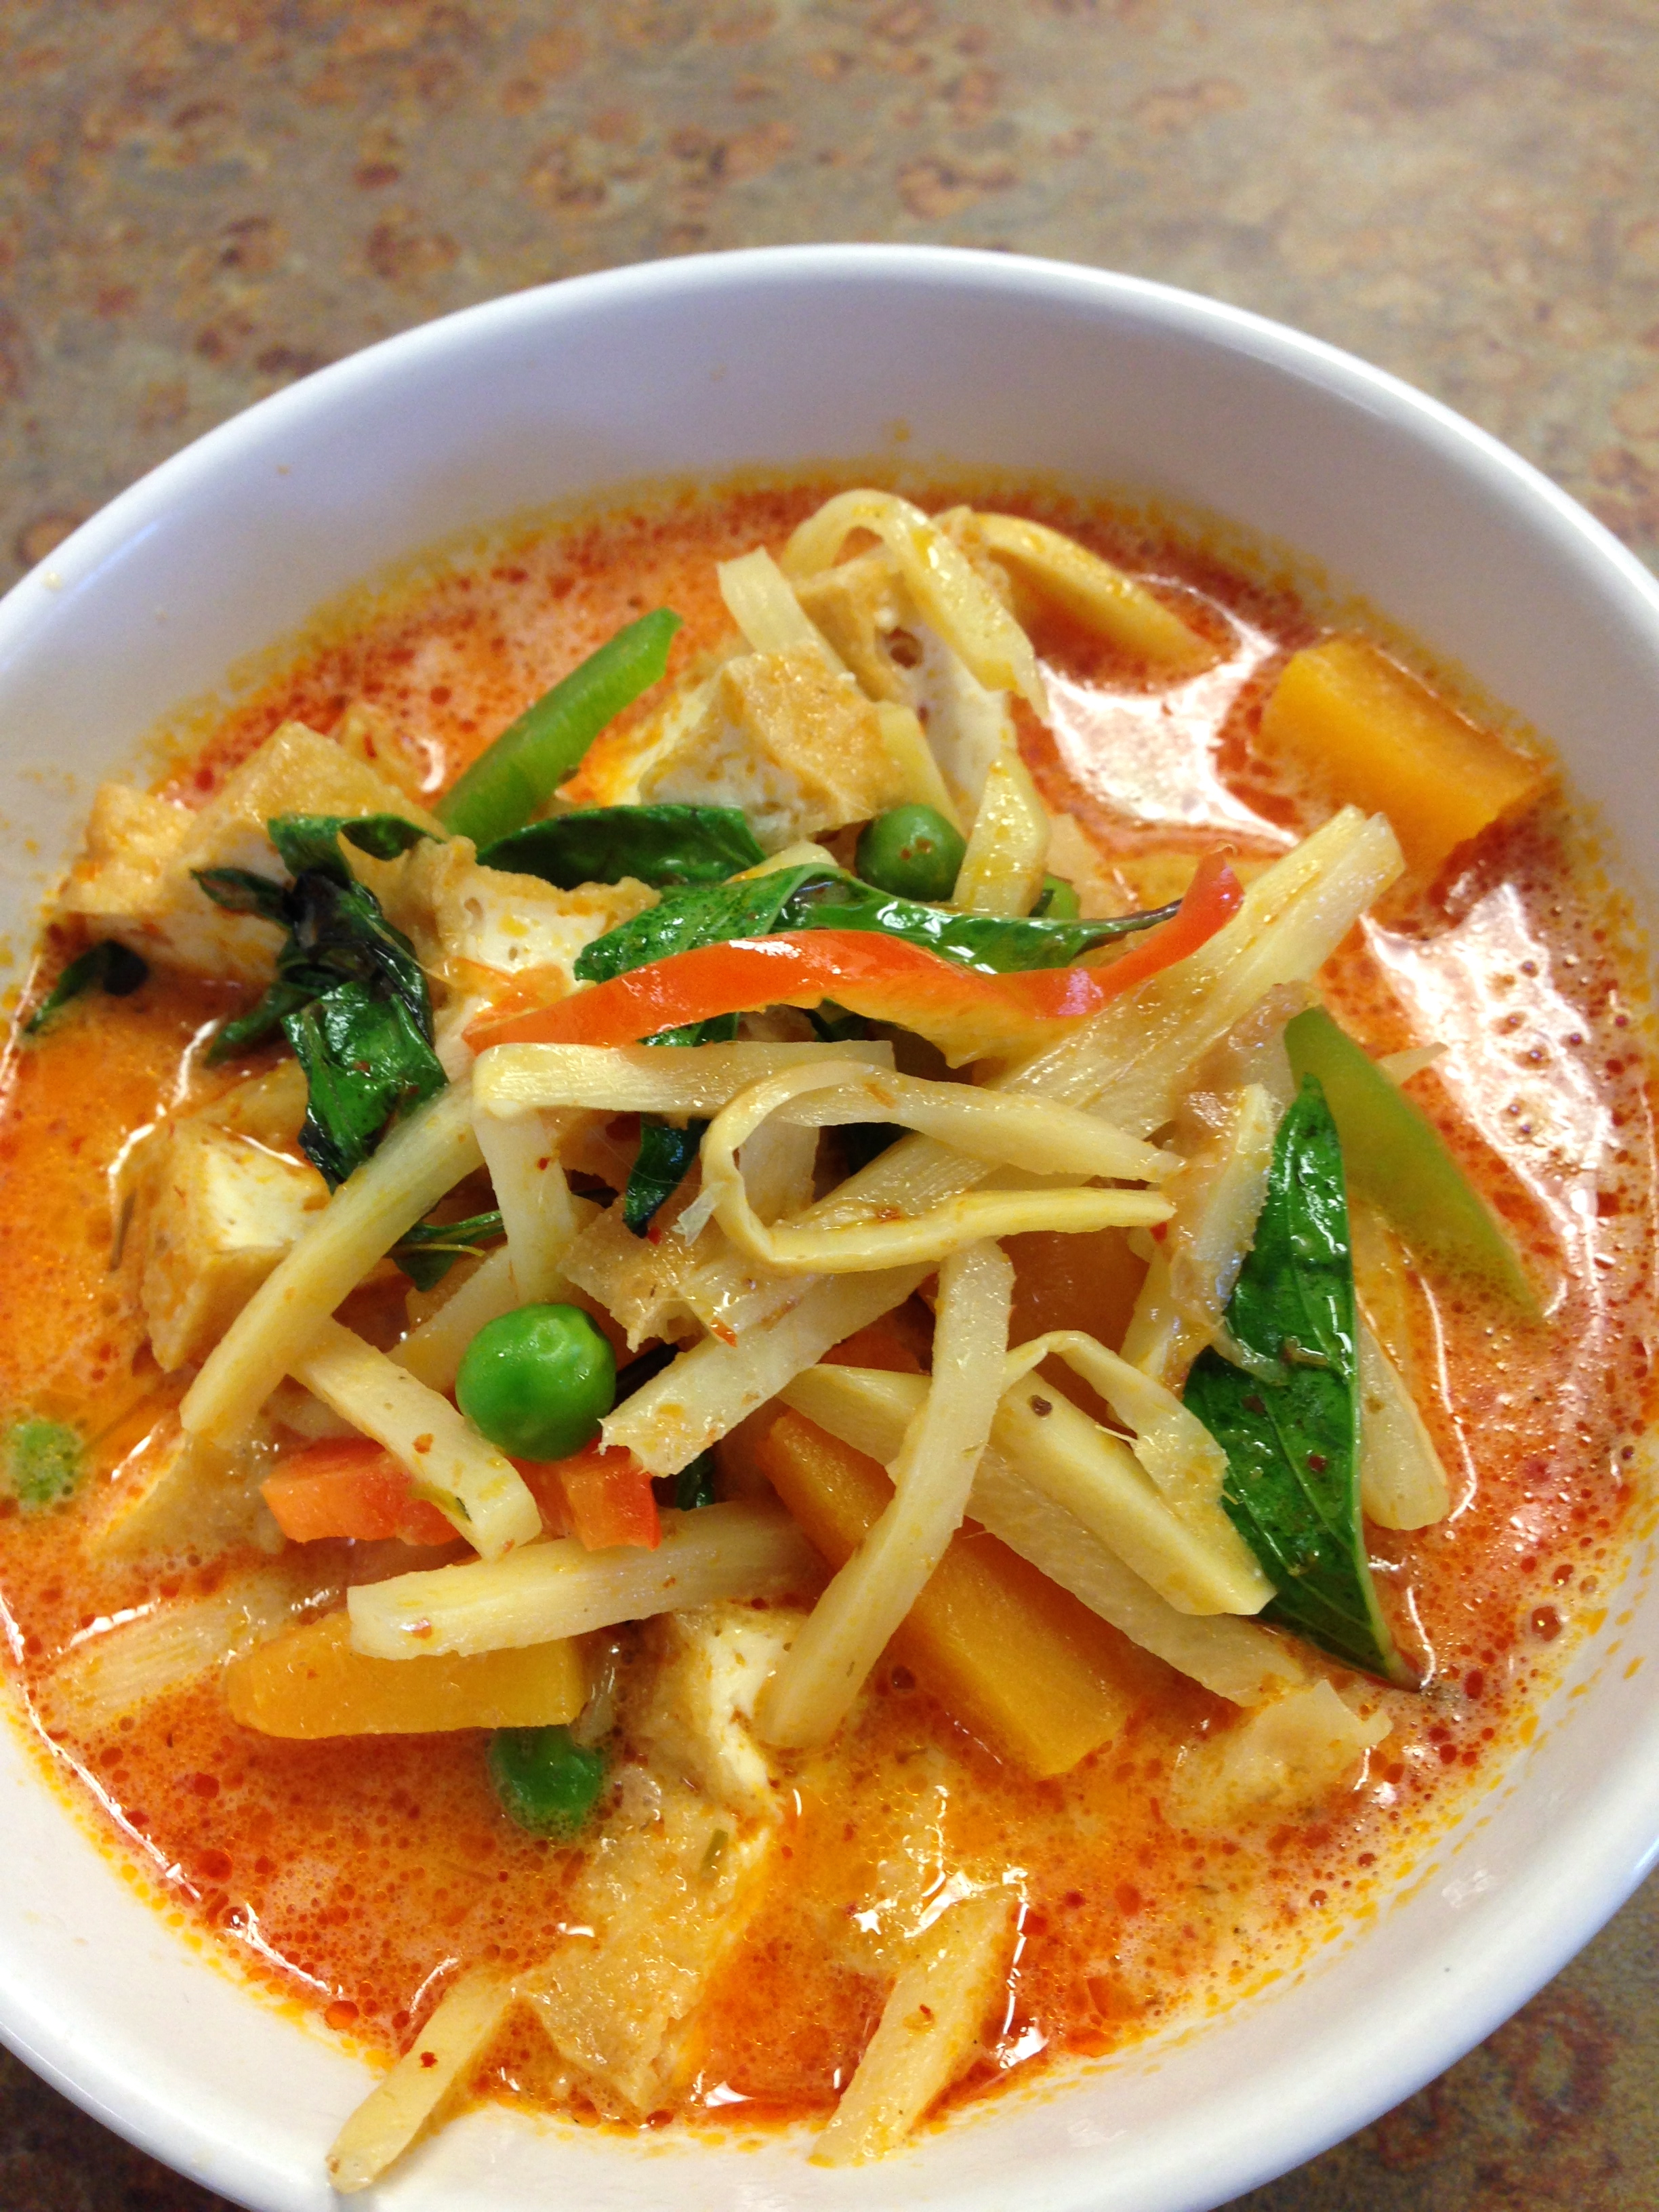 SP2 RED CURRY WITH BUTTER NUT SQUASH Image